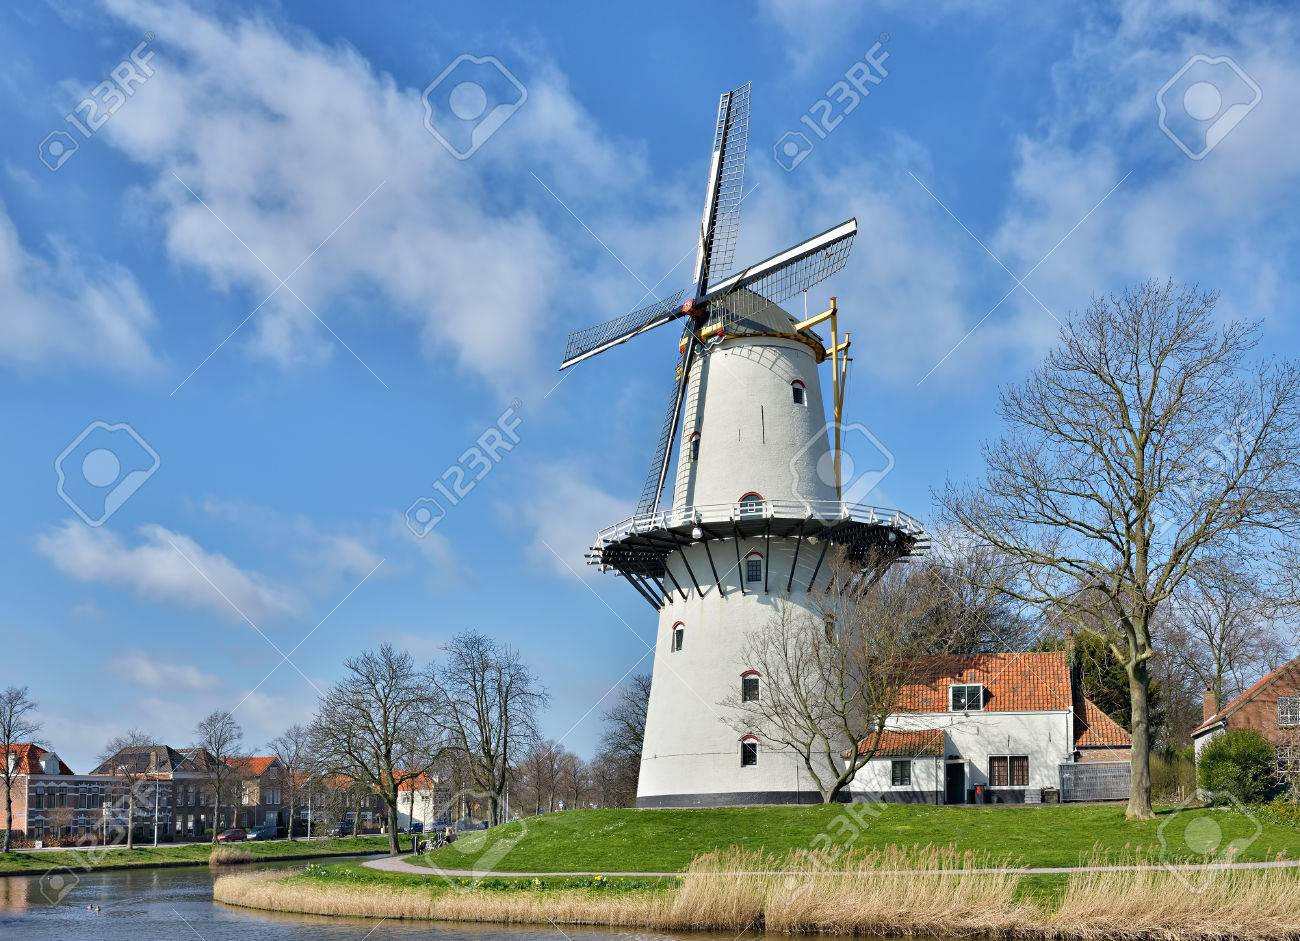 MIDDELBURG, NETHERLANDS-MARCH 16, 2014: Traditional Holland windmill is one of architectural symbols of Netherlands. Stock Photo - 27964580